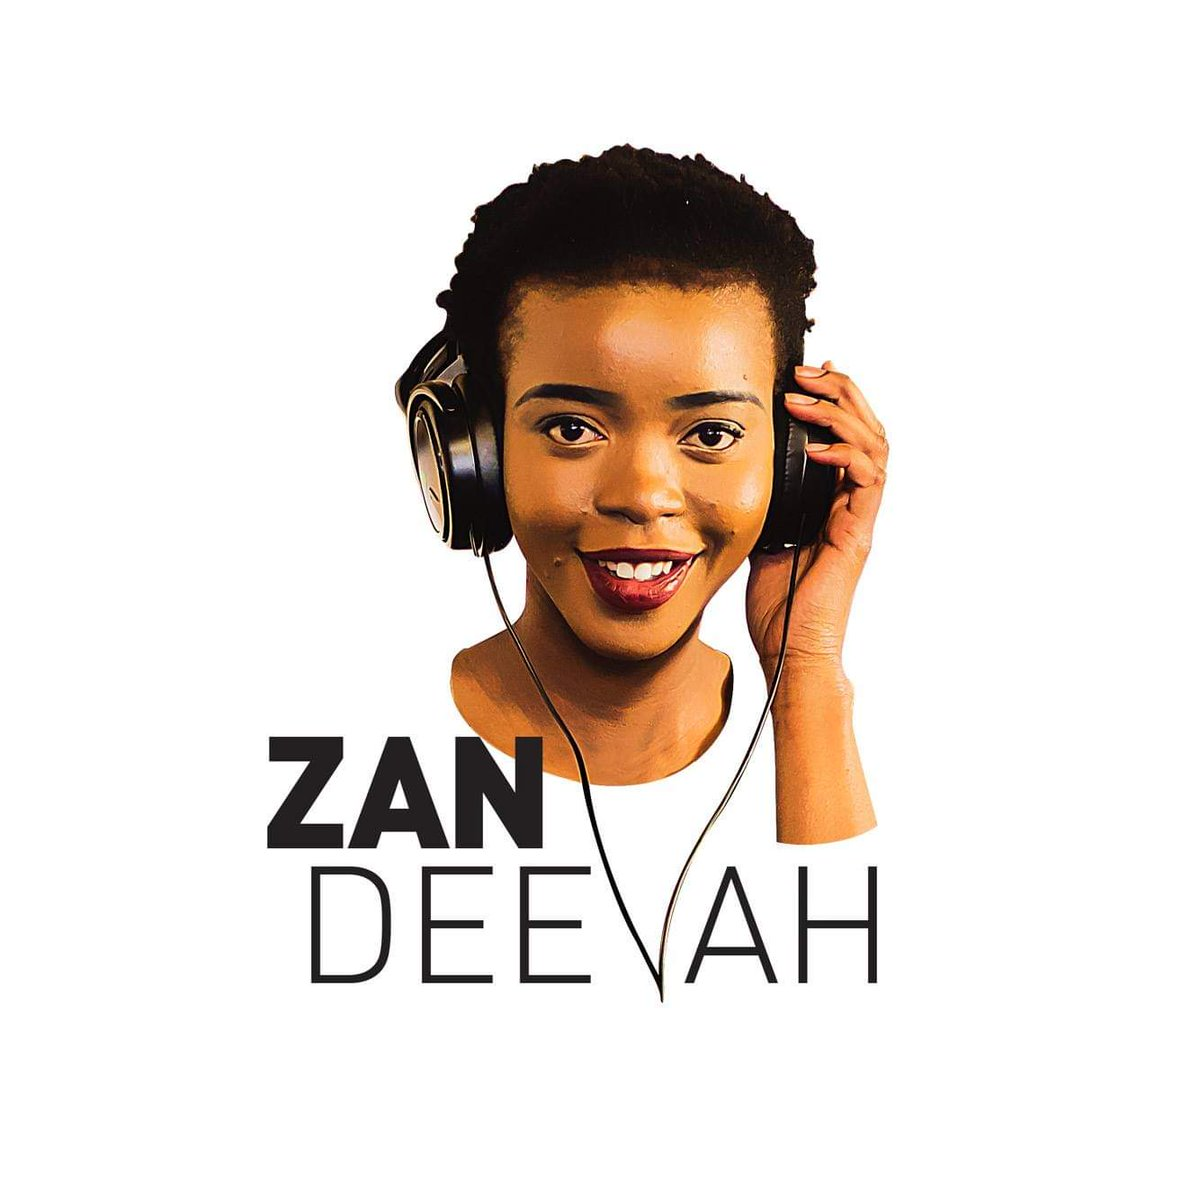 To the TOP Please!!!!! #radio @Yfm #ZanDeevah #mc #trend #fashionista #love #makeupandhair #letsgo #gigs #vibe #AMAPIANO #Hiphop #gp #news #north #morning #night #show #kasi #club #stage #summer #beautiful #Tembisa #partywith #girls #powerful #GOD #studio #passion...